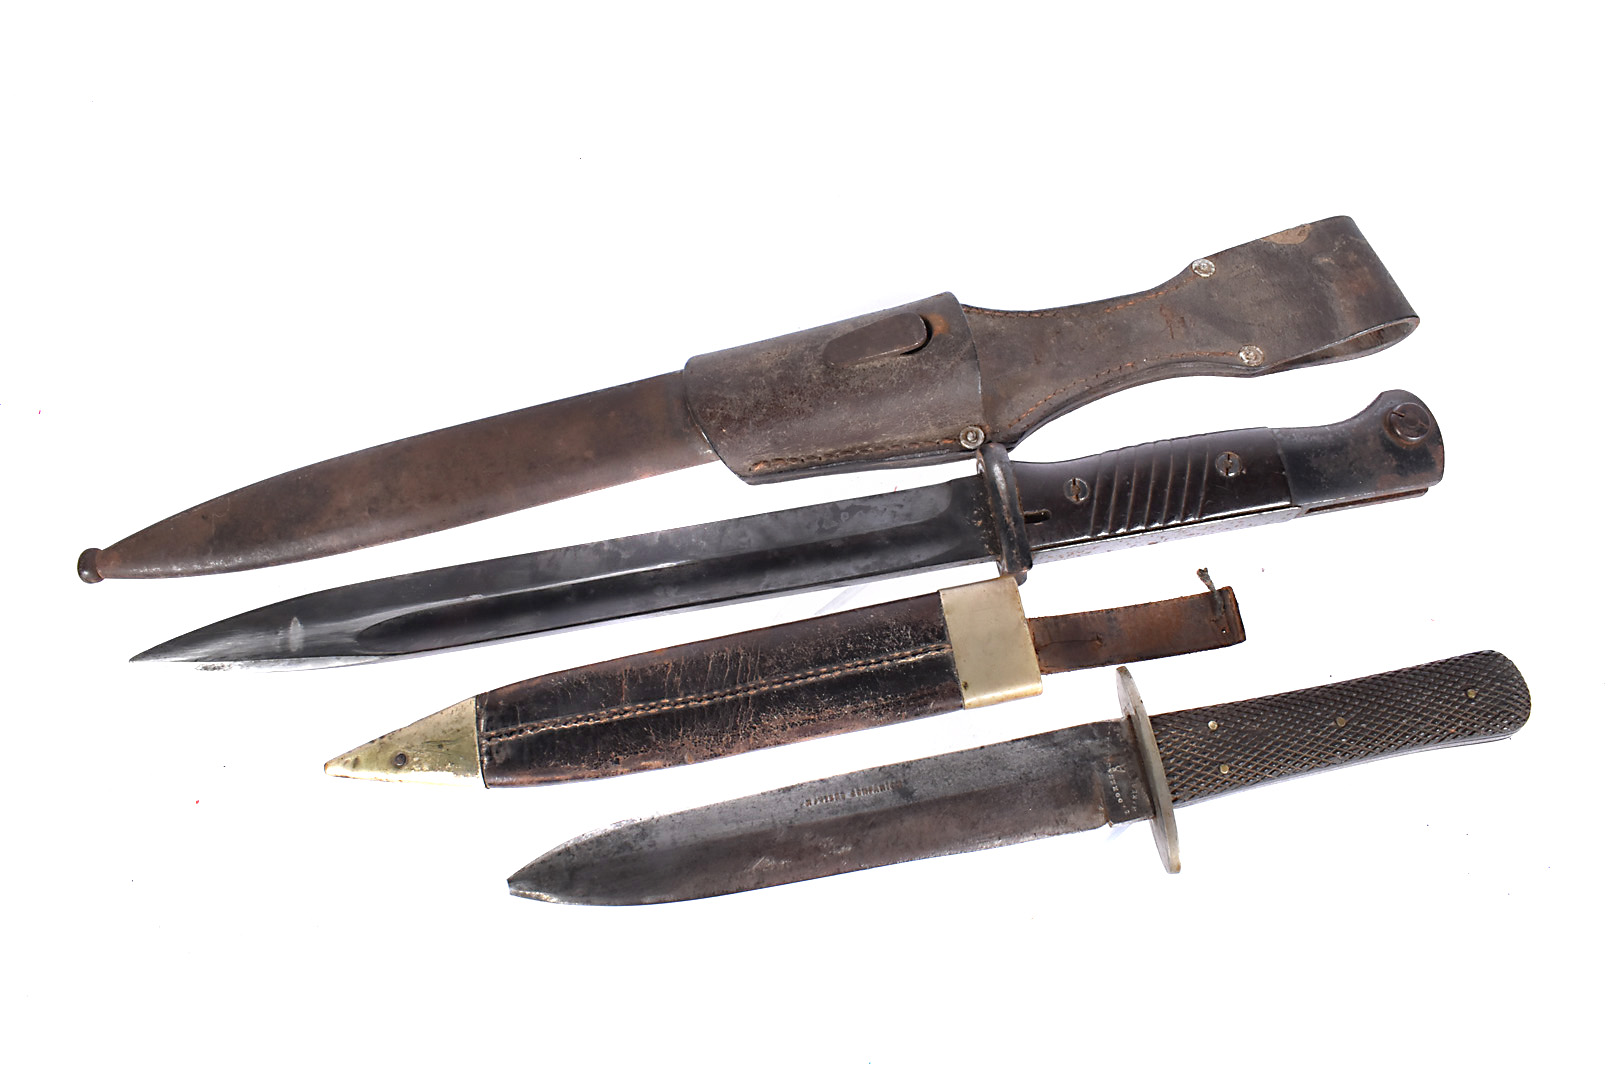 A WWII German K98 bayonet and scabbard by E.U.F Horster, dated 1940, with serial 5376, complete with